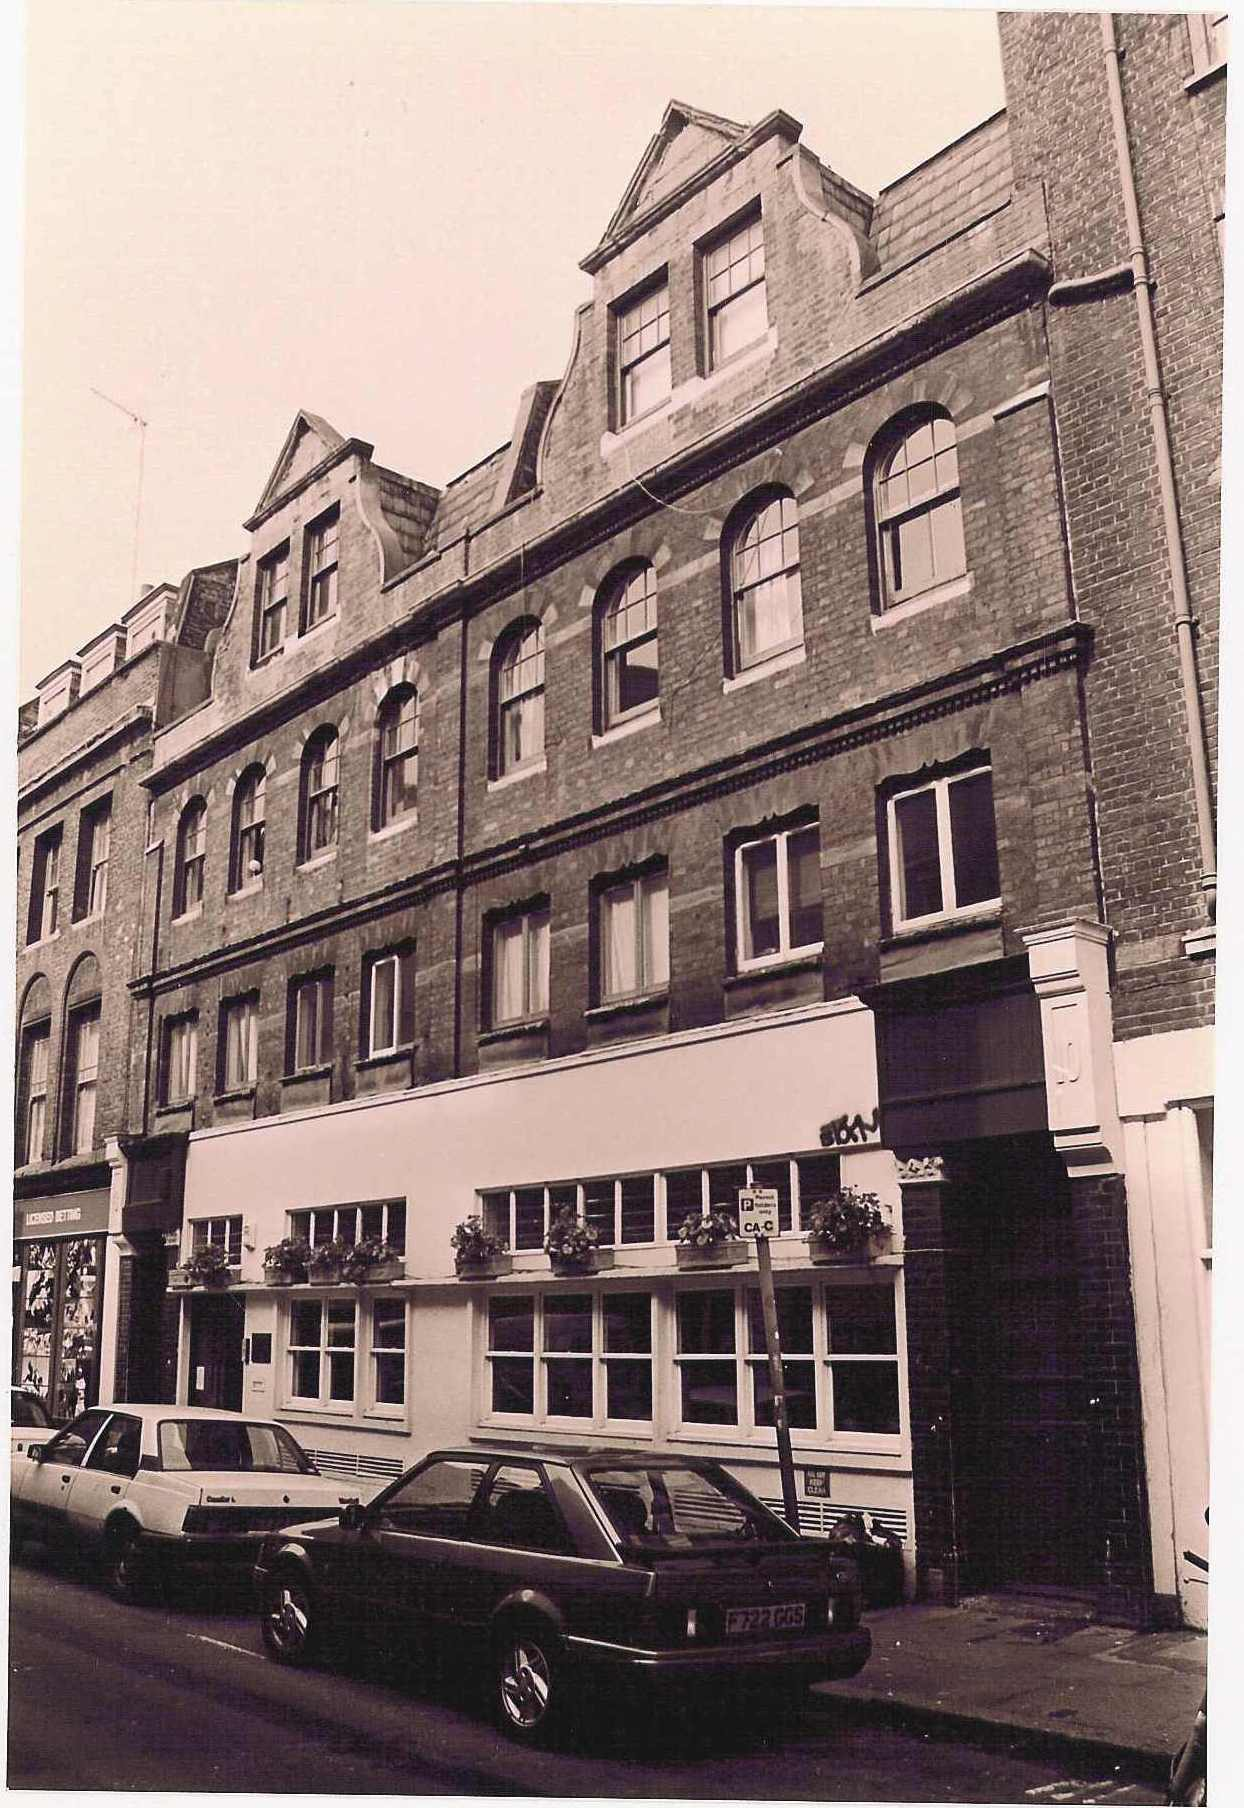 3-5 Earlham Street before restoration, c.1990.